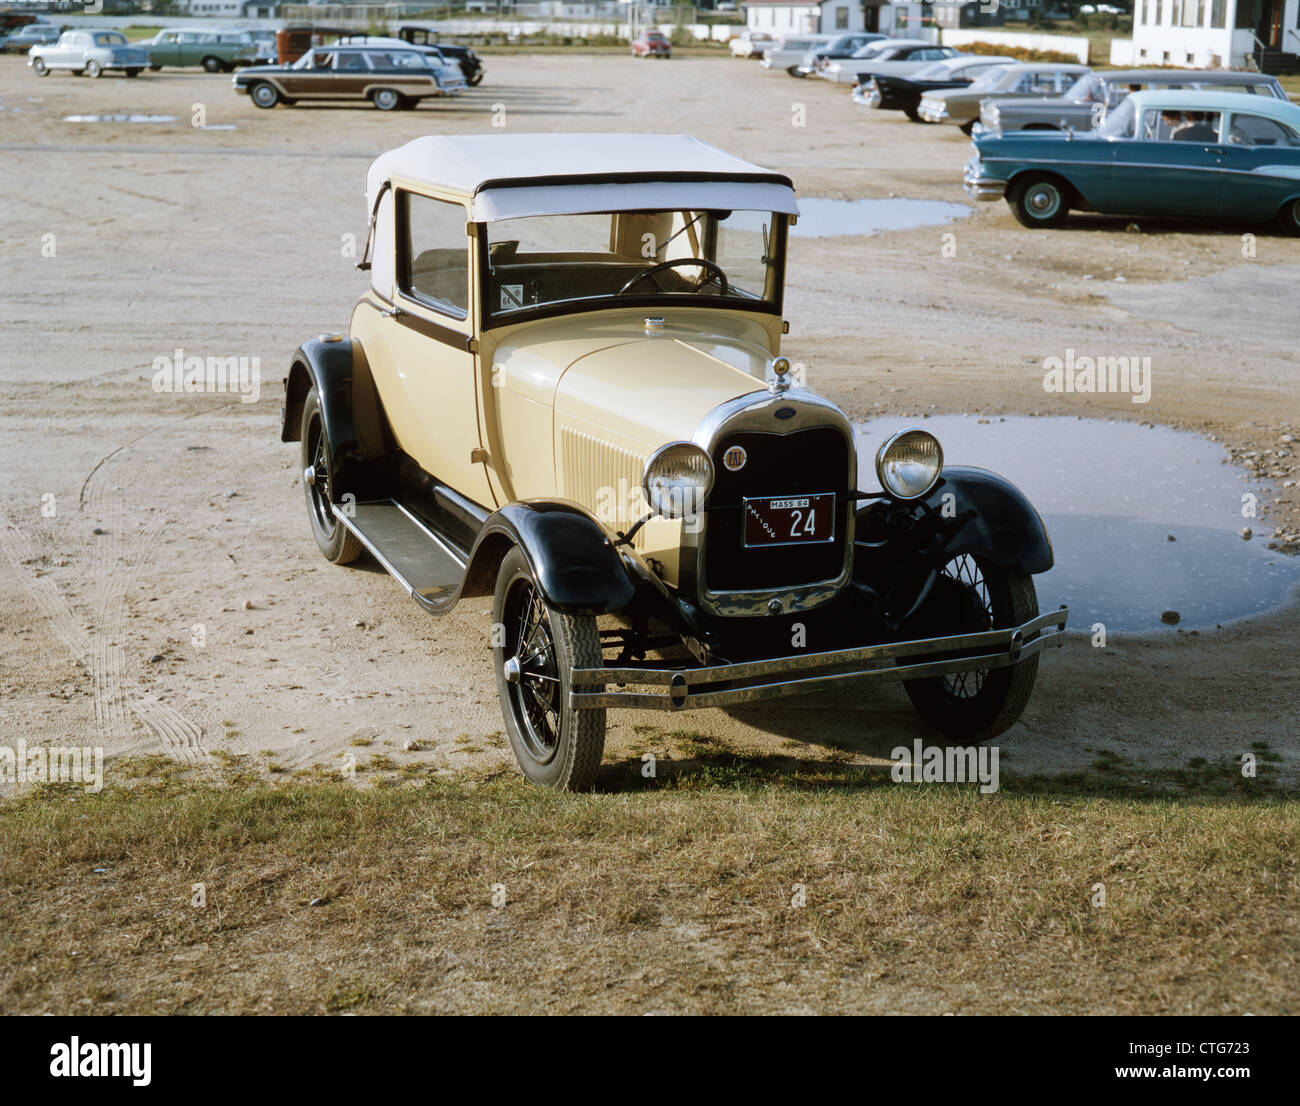 1920 FORD 1929 COUPé Photo Stock